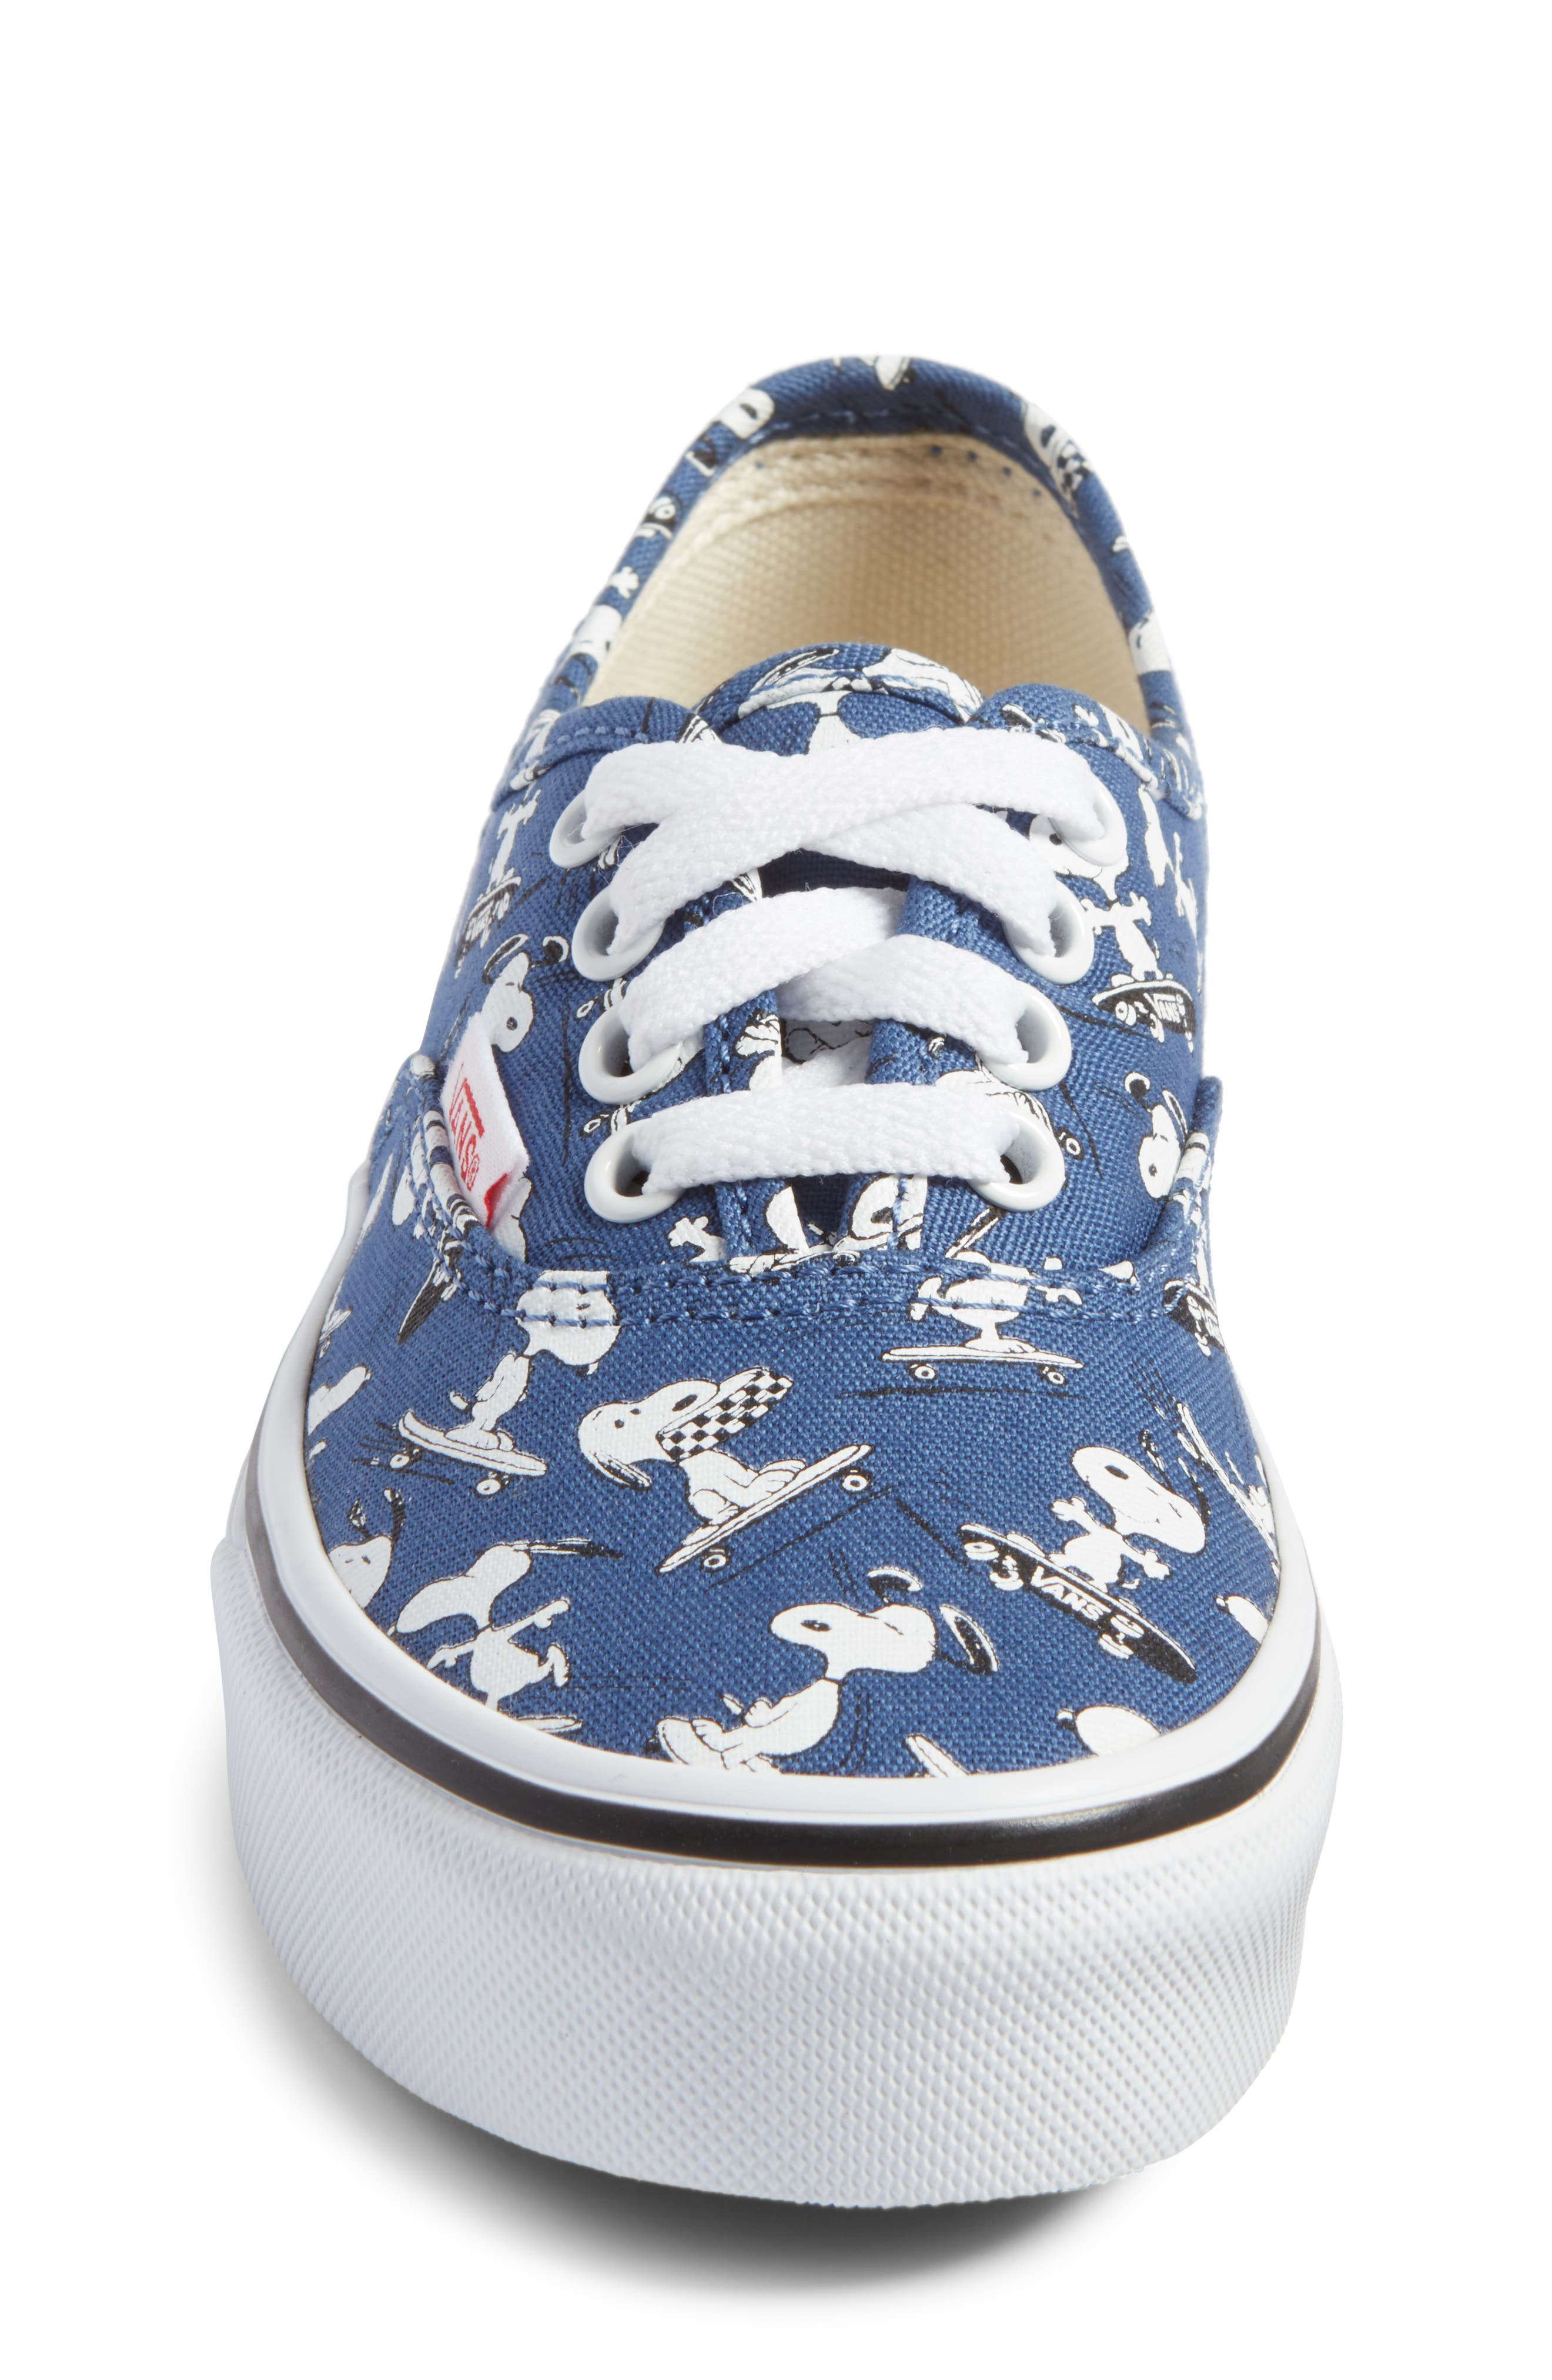 x Peanuts Authentic Sneaker,                             Alternate thumbnail 4, color,                             400